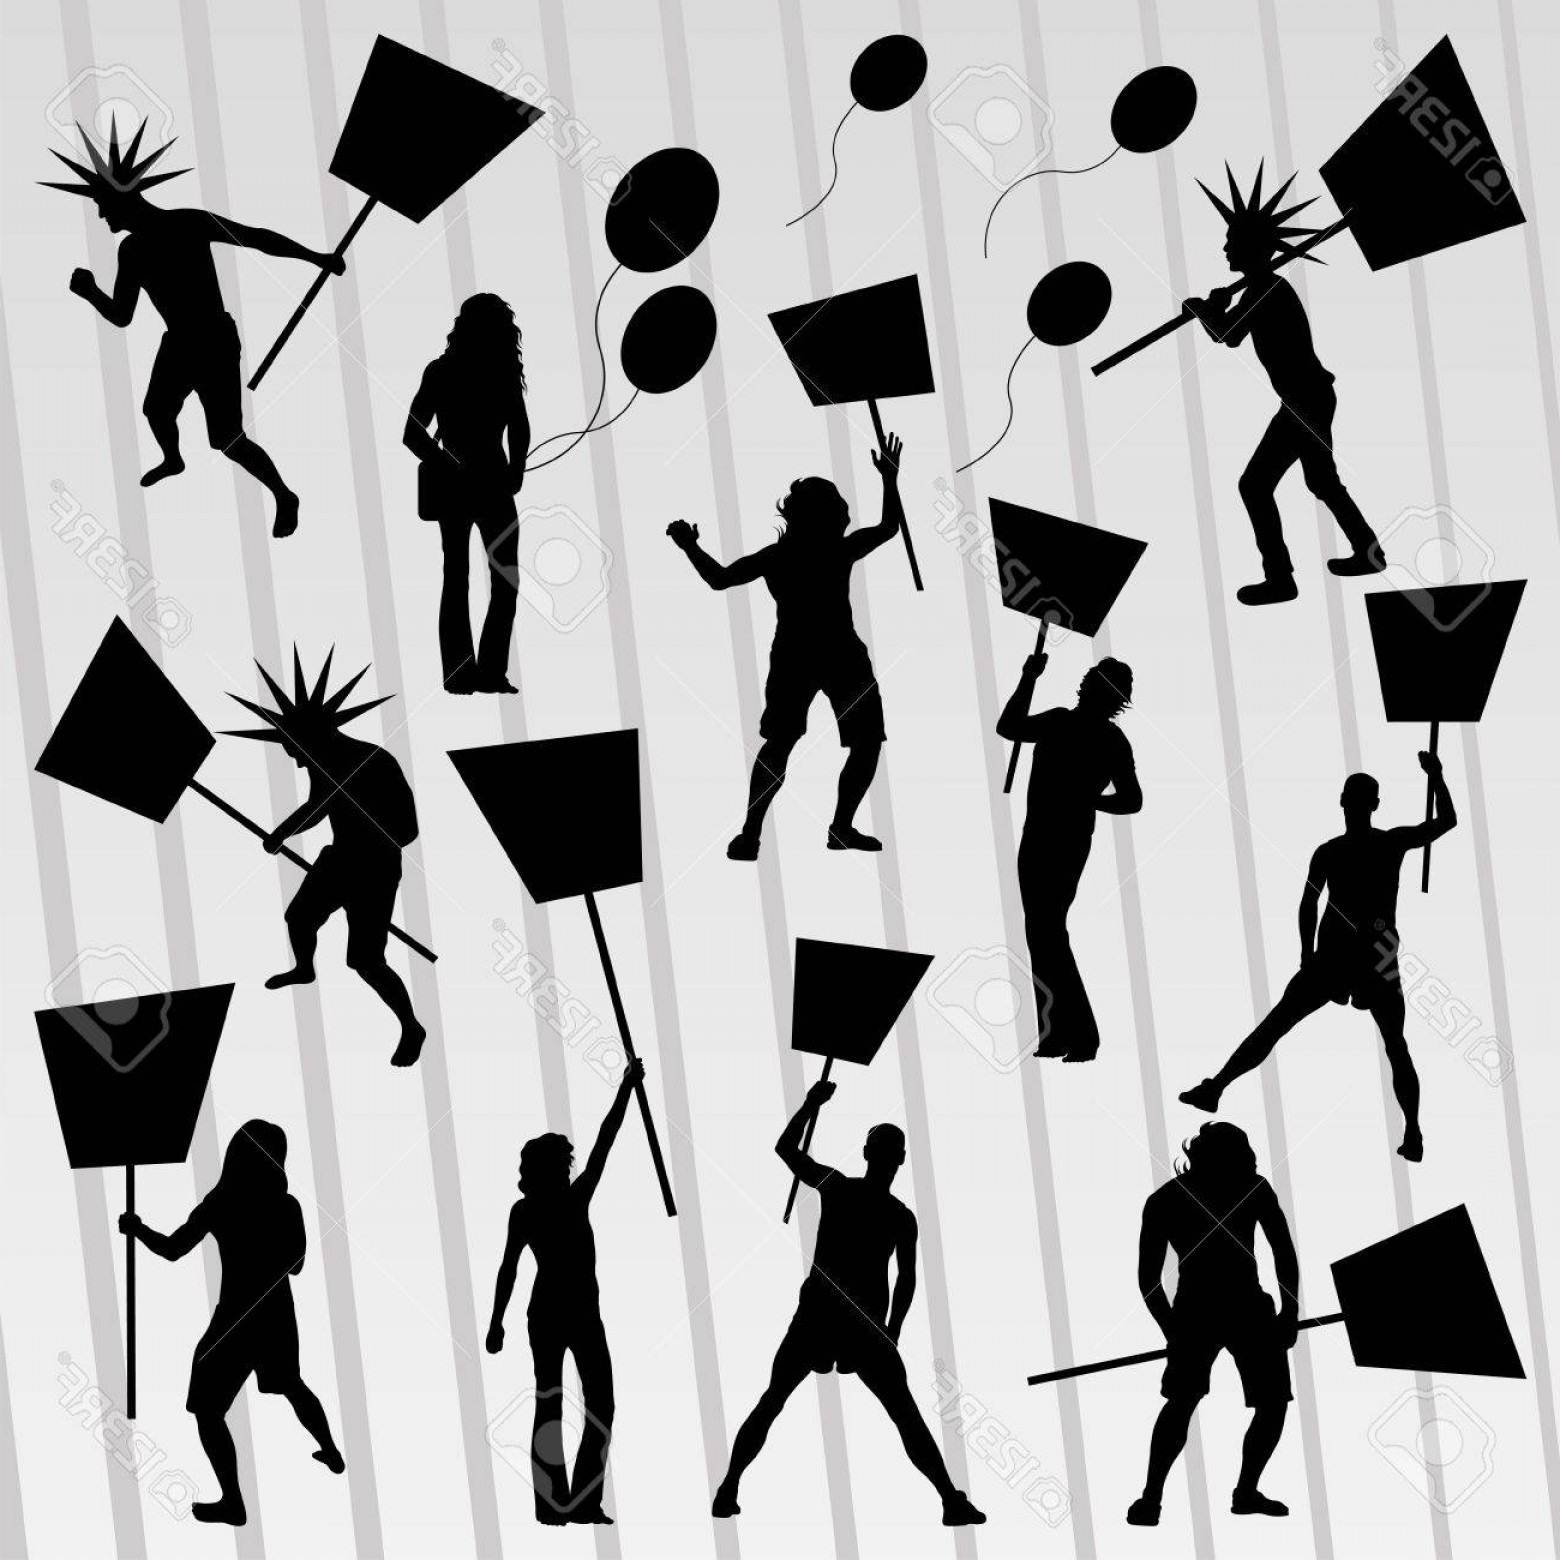 Color Guard Silhouette Vector: Photoprotesters Crowd Silhouettes Collection Background Illustration Vector